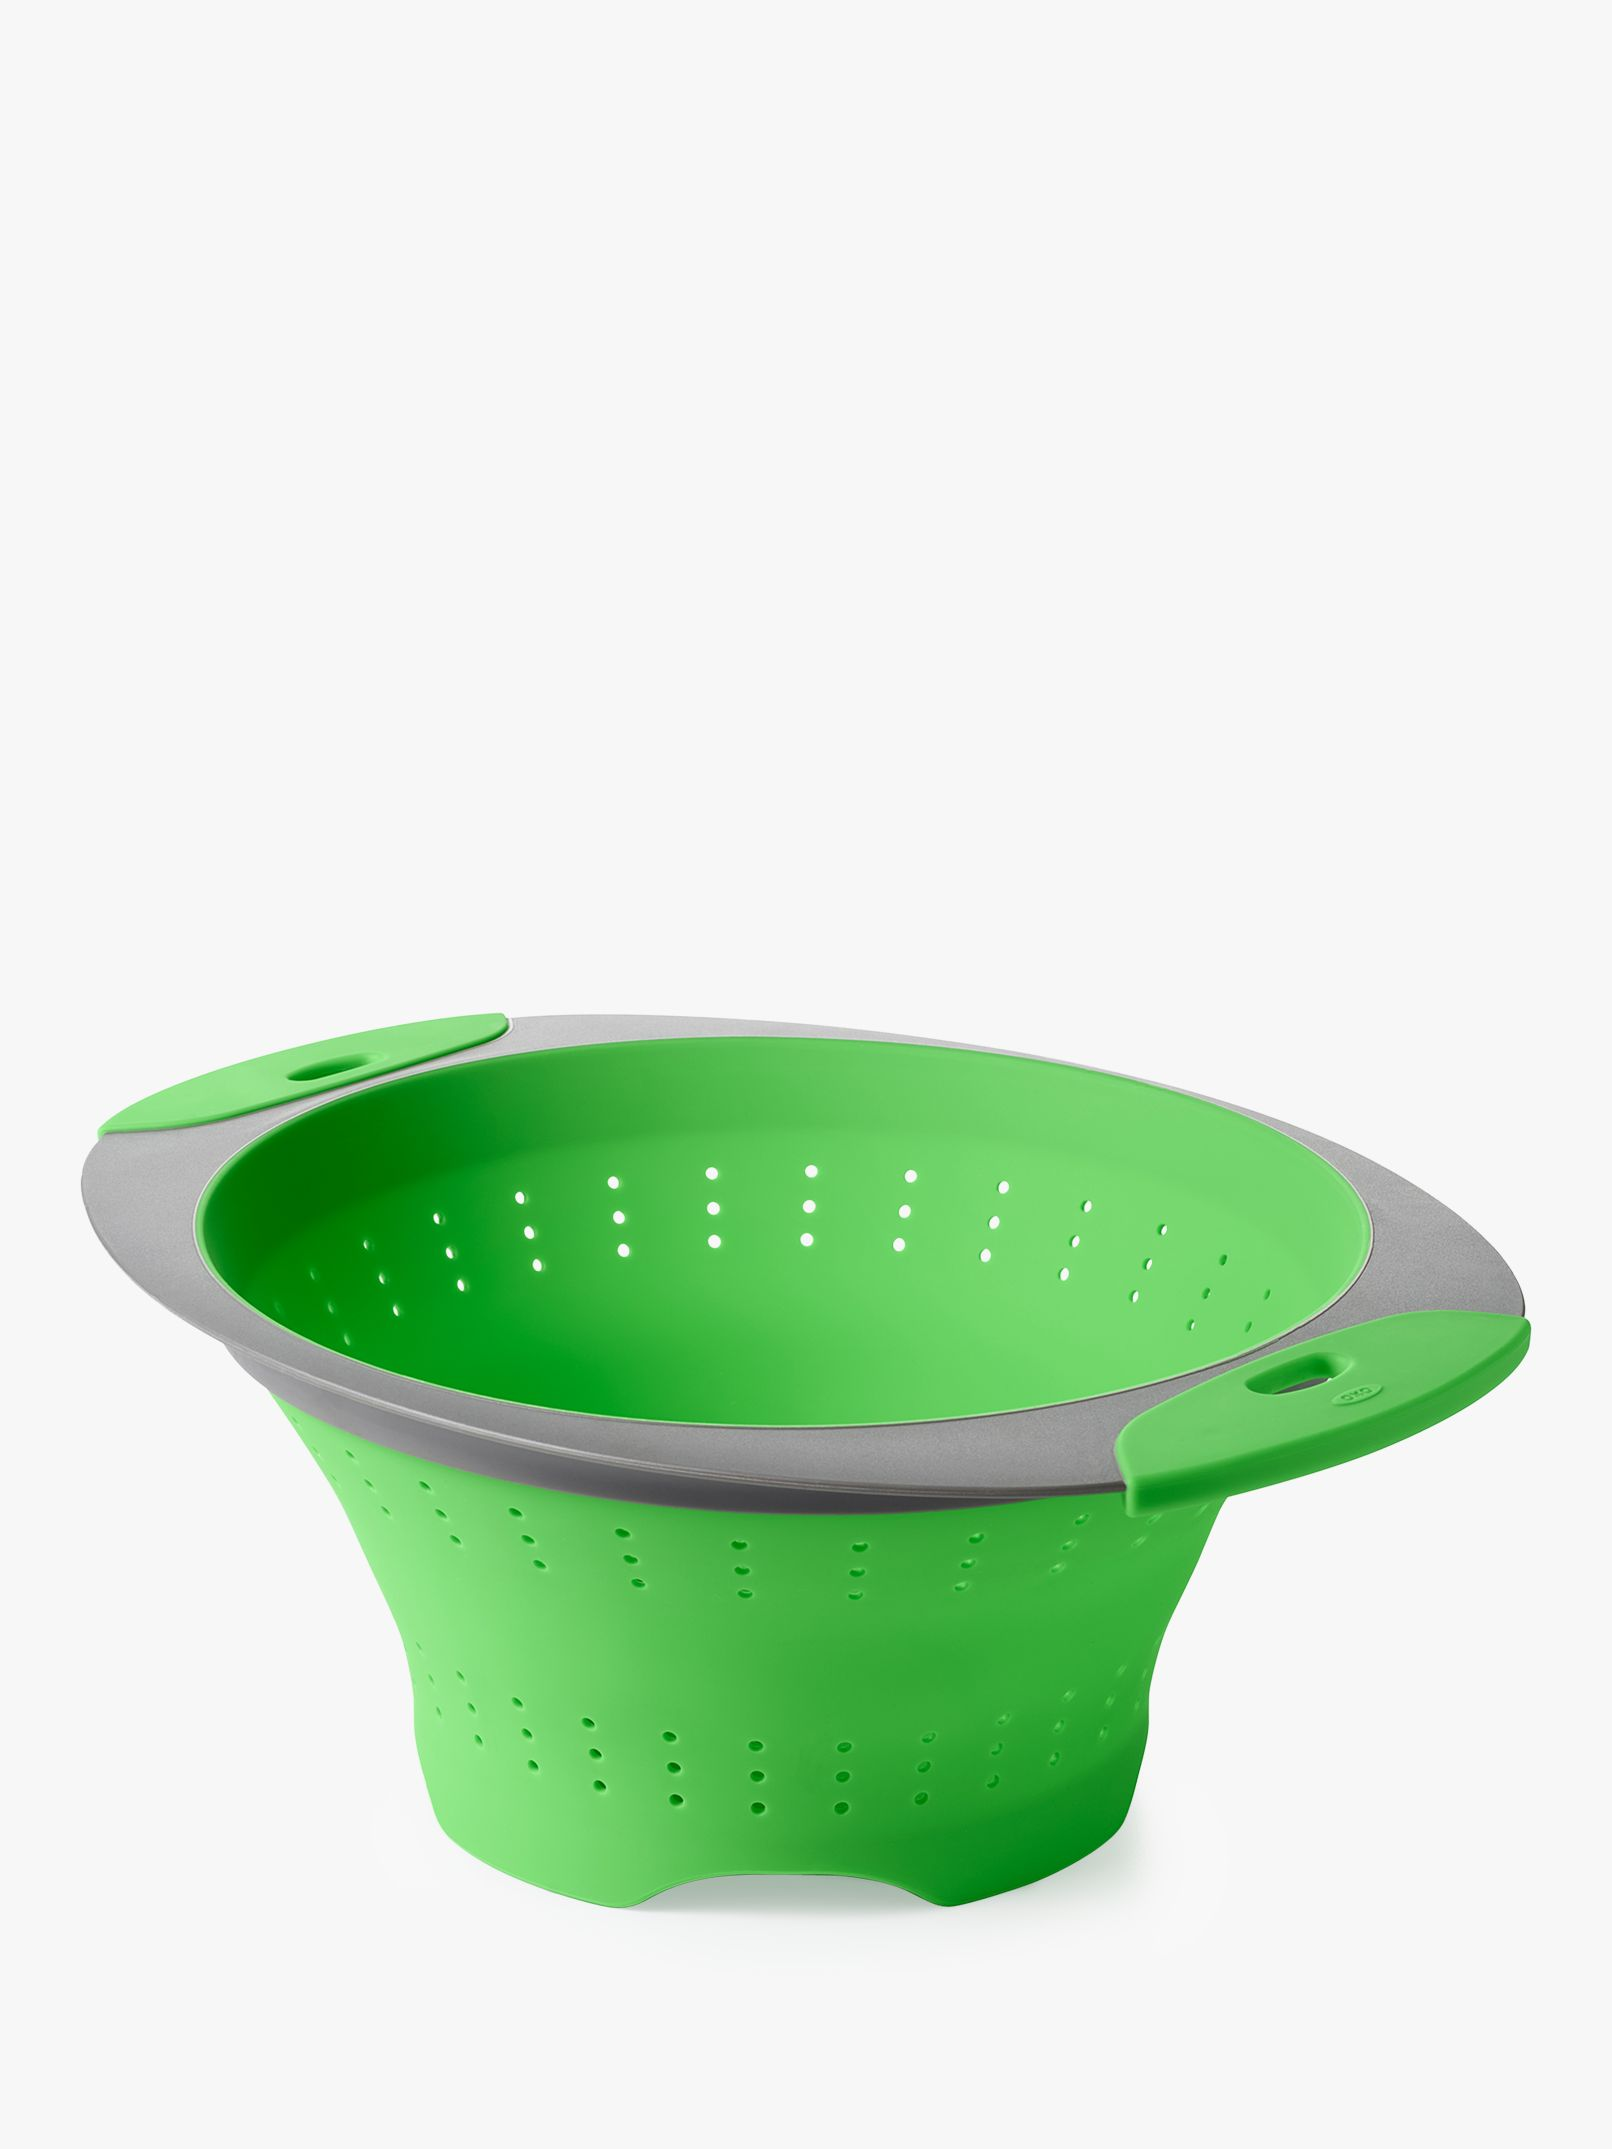 Oxo OXO Good Grips Collapsible Colander, Green, 4L